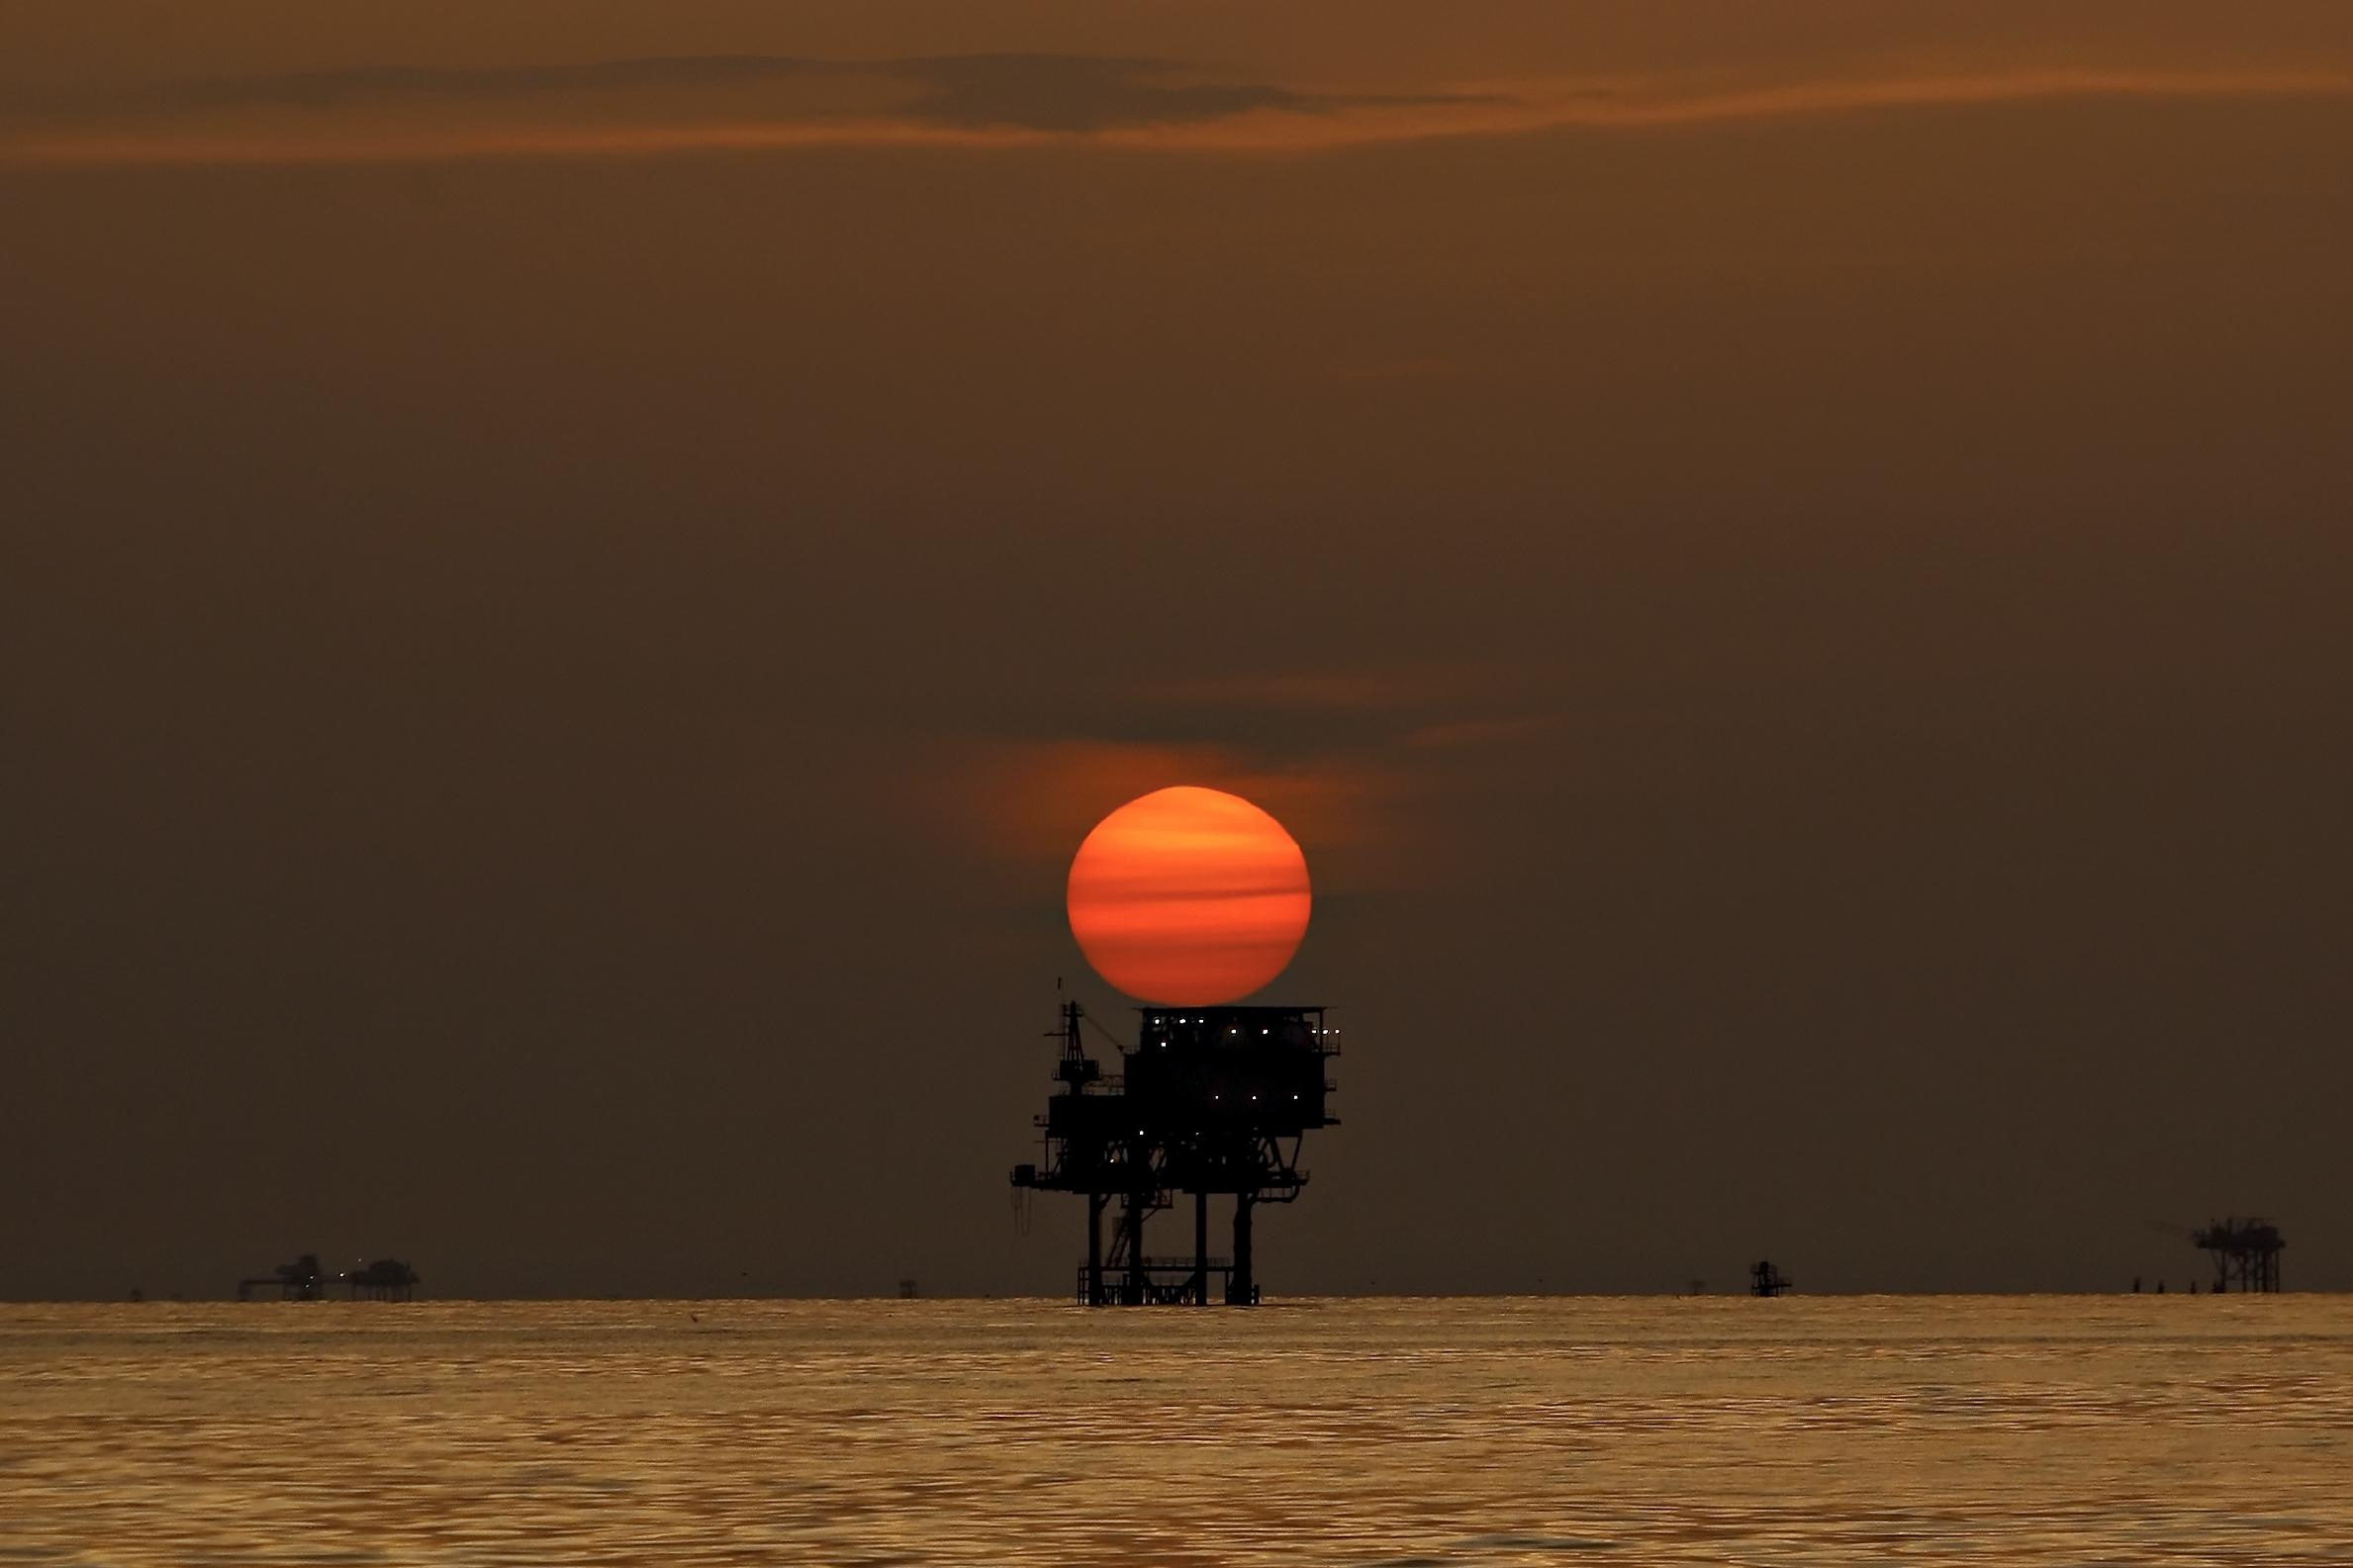 Crude oil price hits multi-month lows as downbeat mood persists